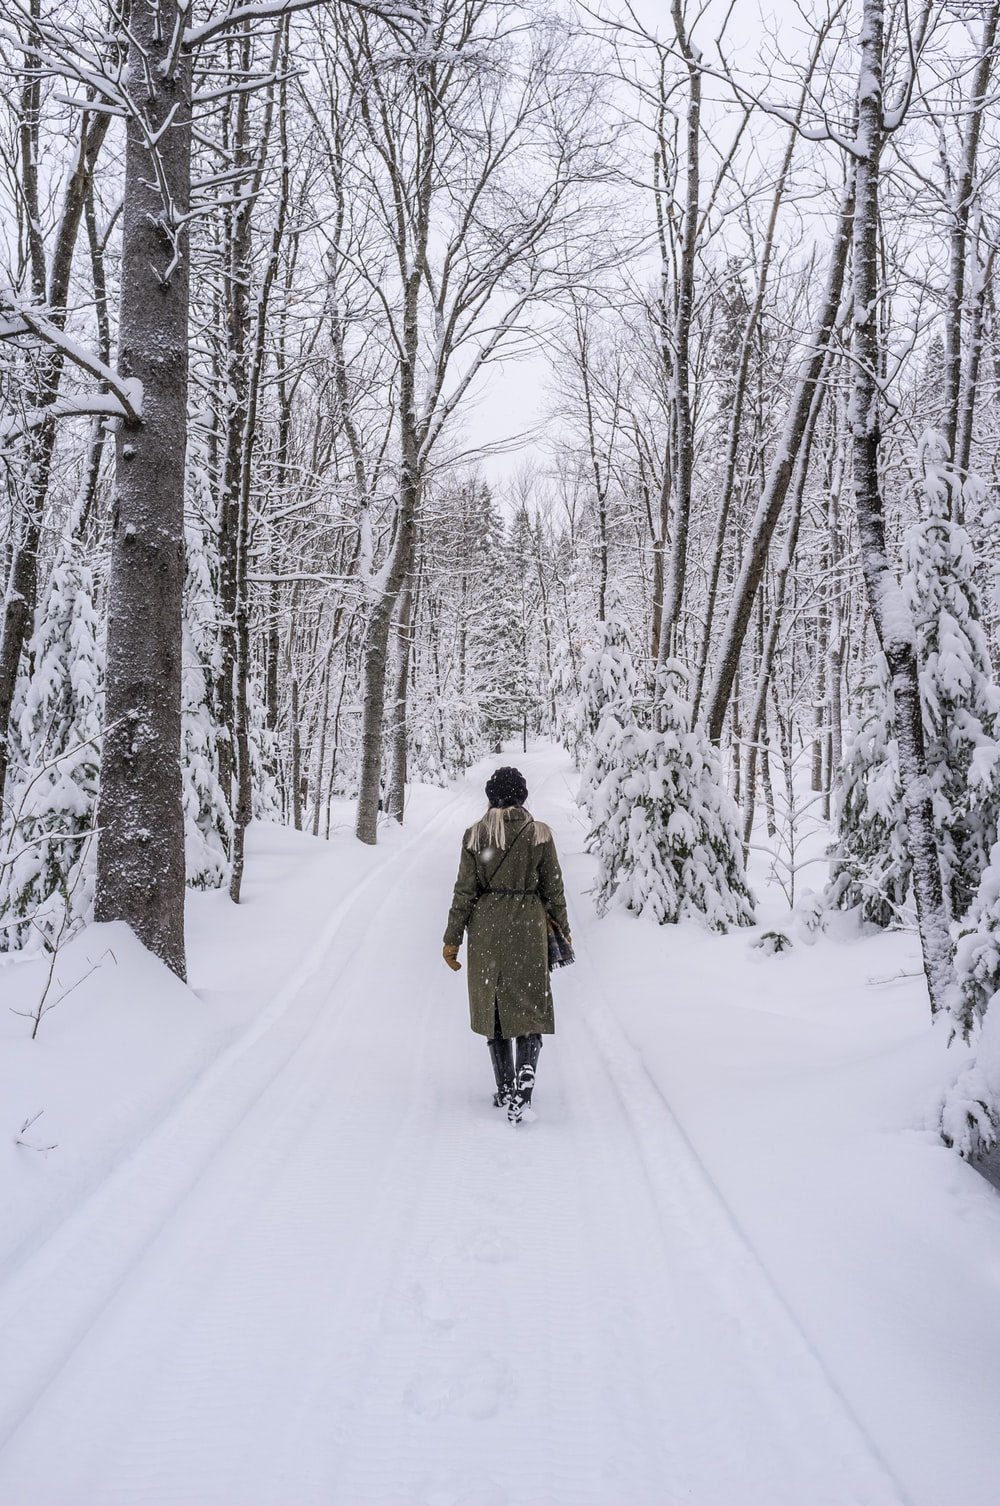 person walking on snow covered road surrounded by bare trees